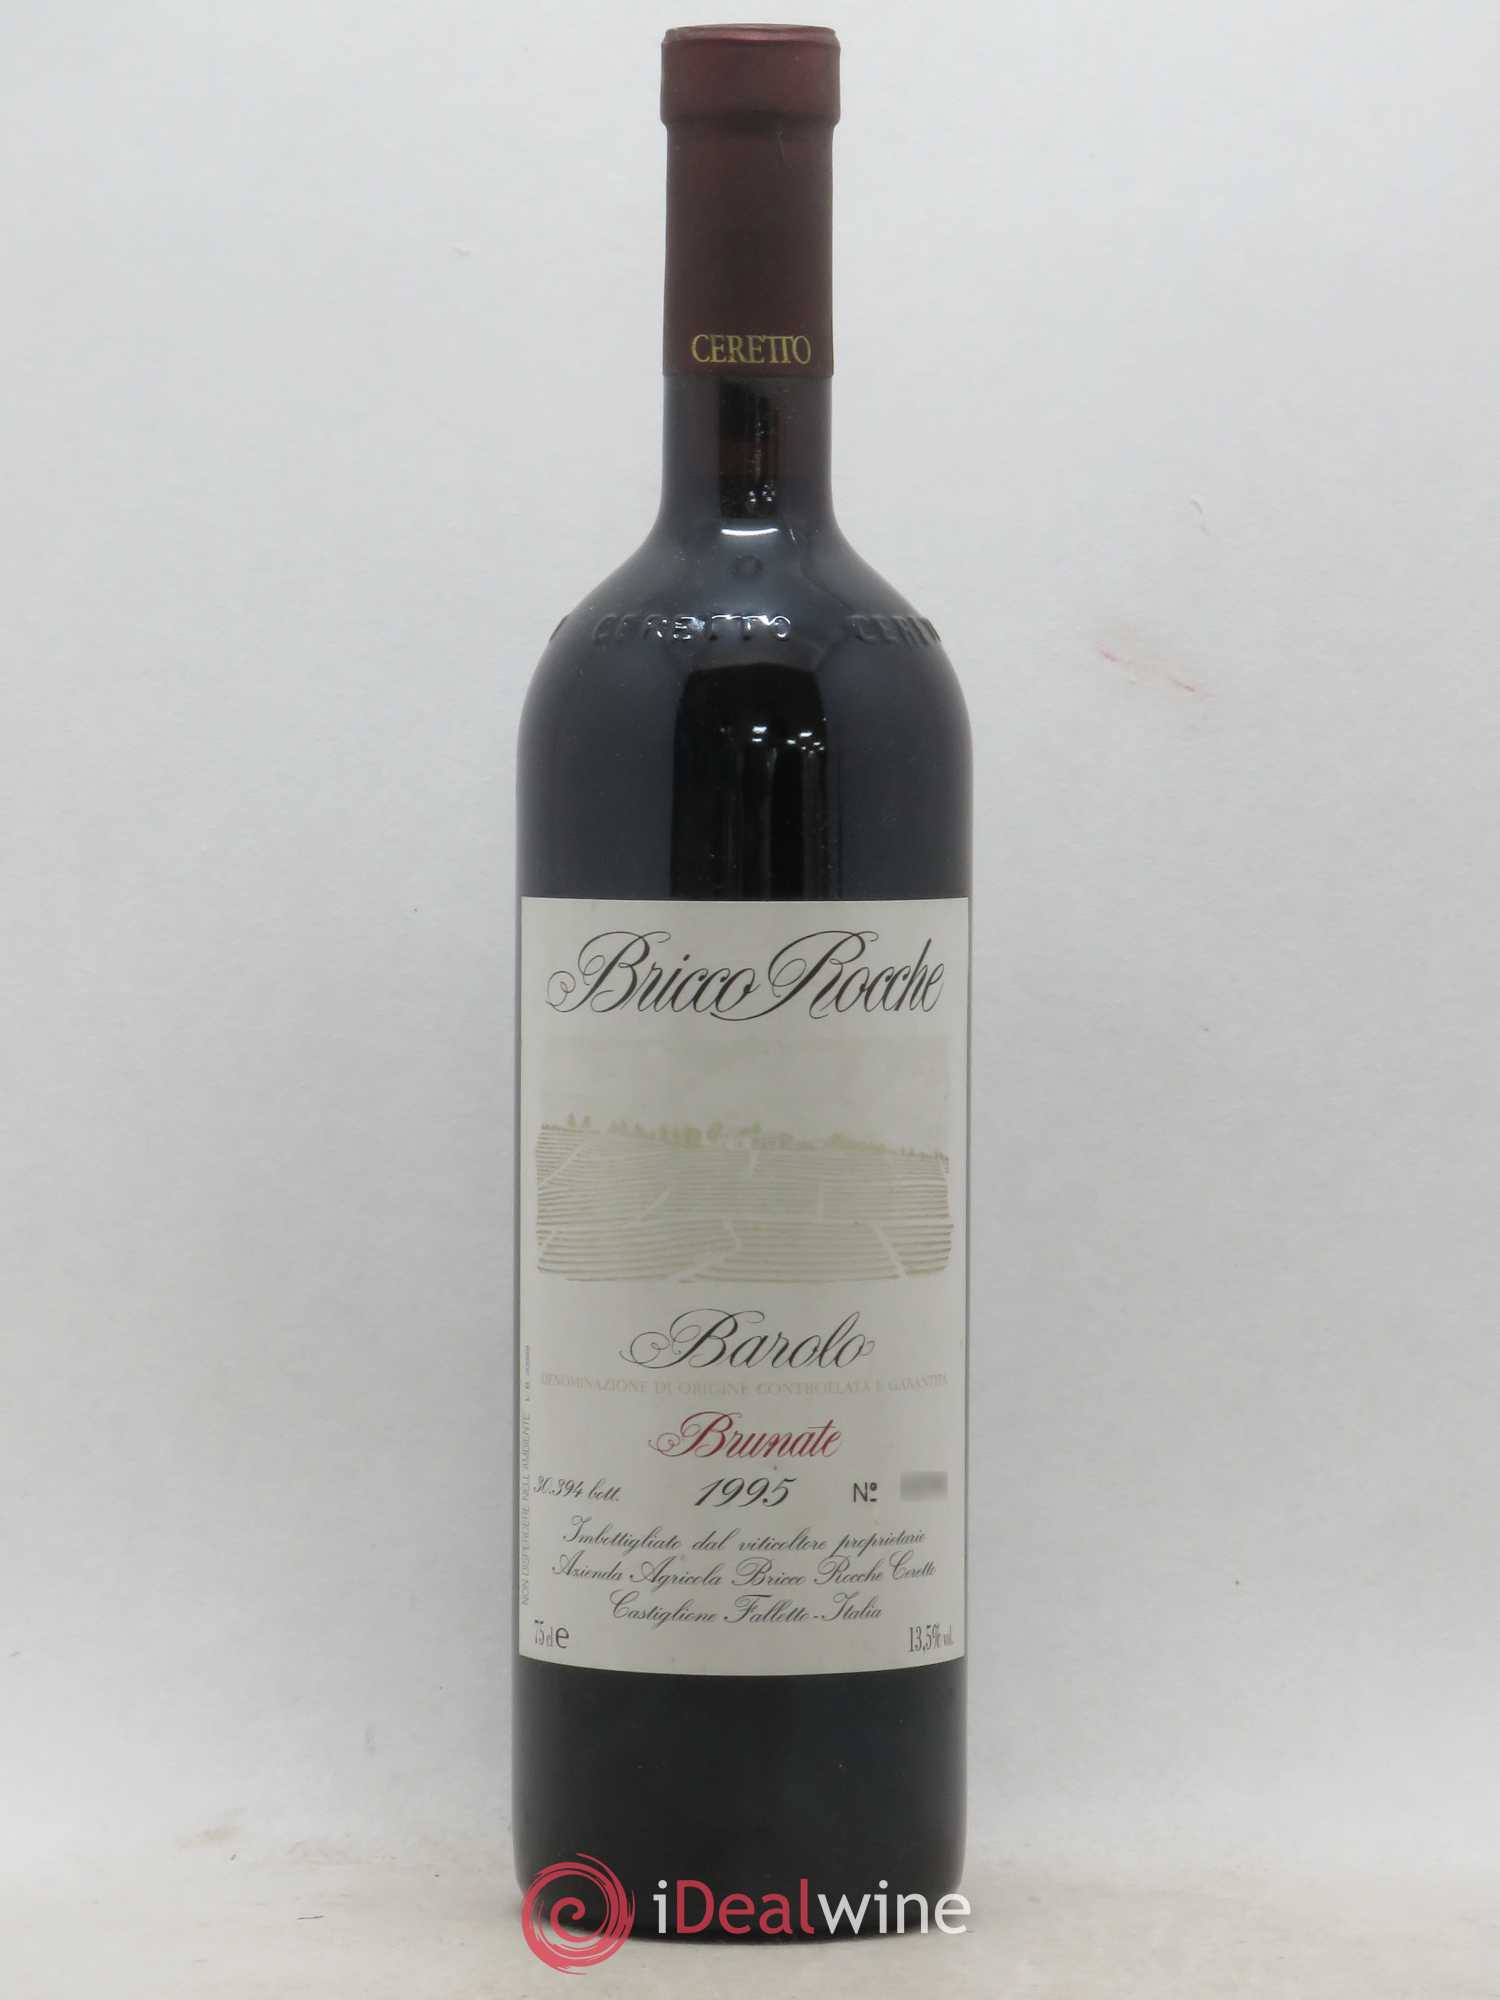 Barolo Bricco Rocche DOCG Ceretto Brunate (no reserve) 1995 - Lot of 1 Bottle